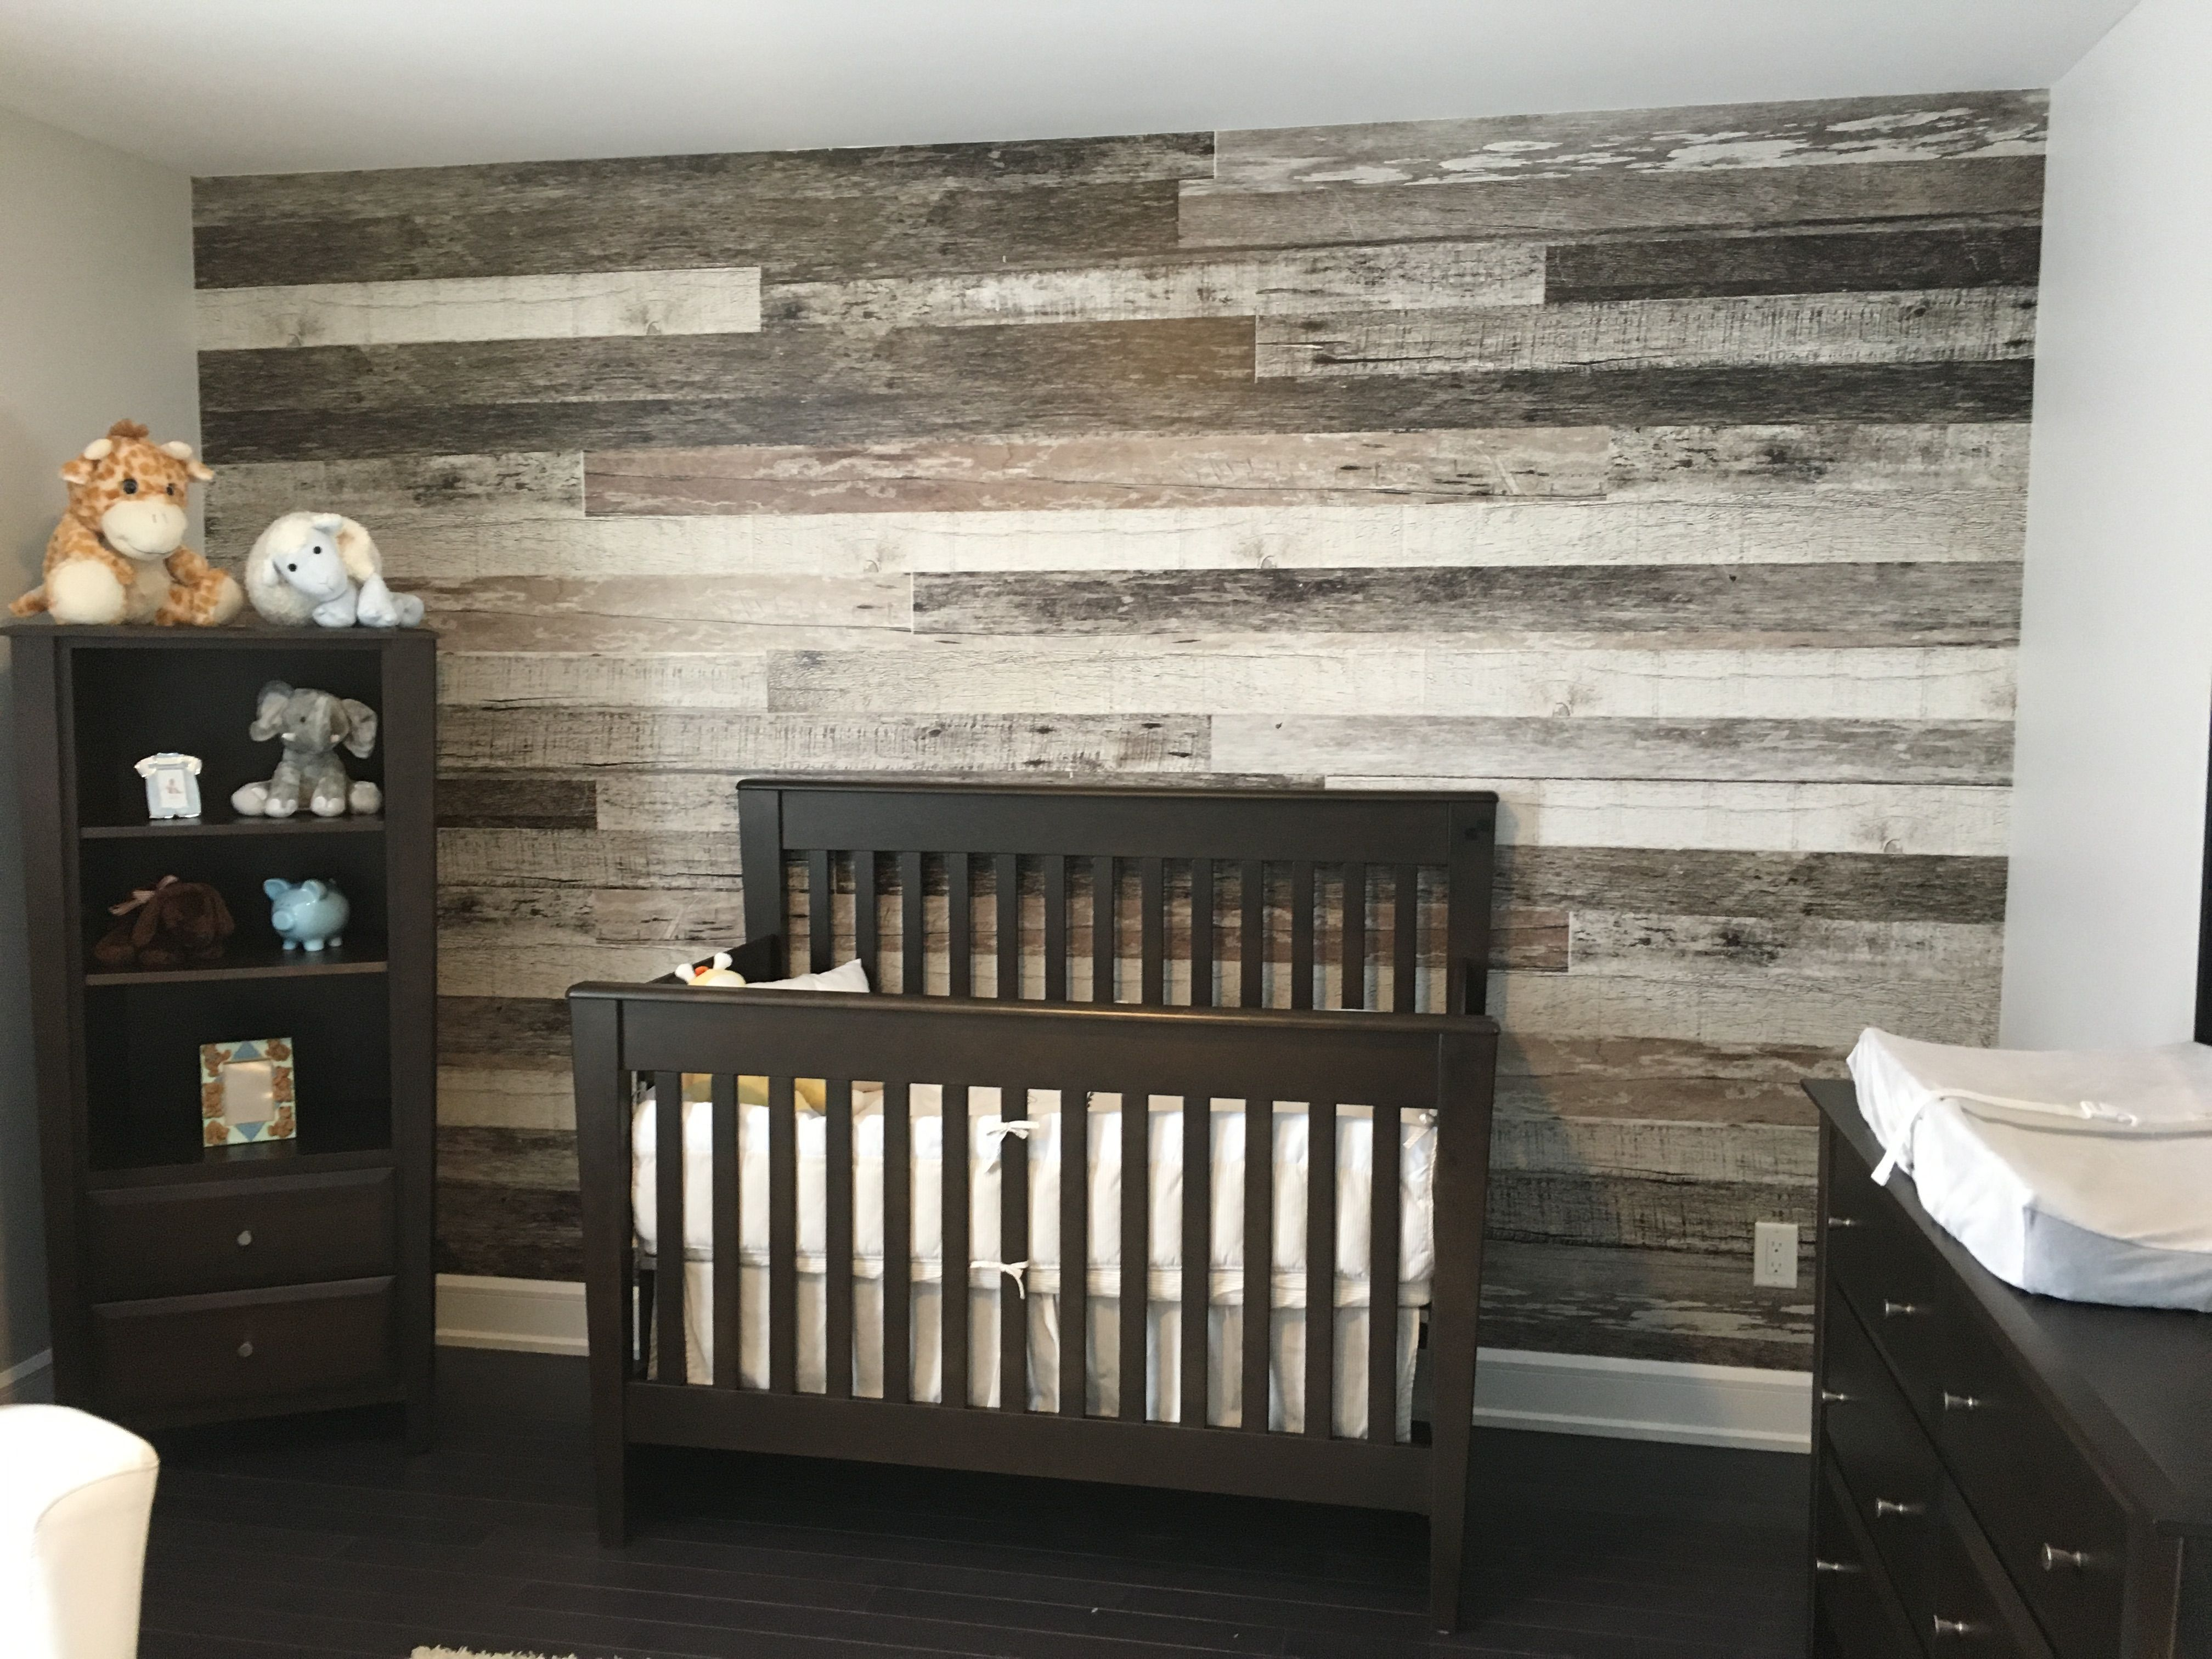 Home Dsgn Designing Home Inspiration Accent Walls In Living Room Accent Wall Bedroom Bedroom Wallpaper Accent Wall